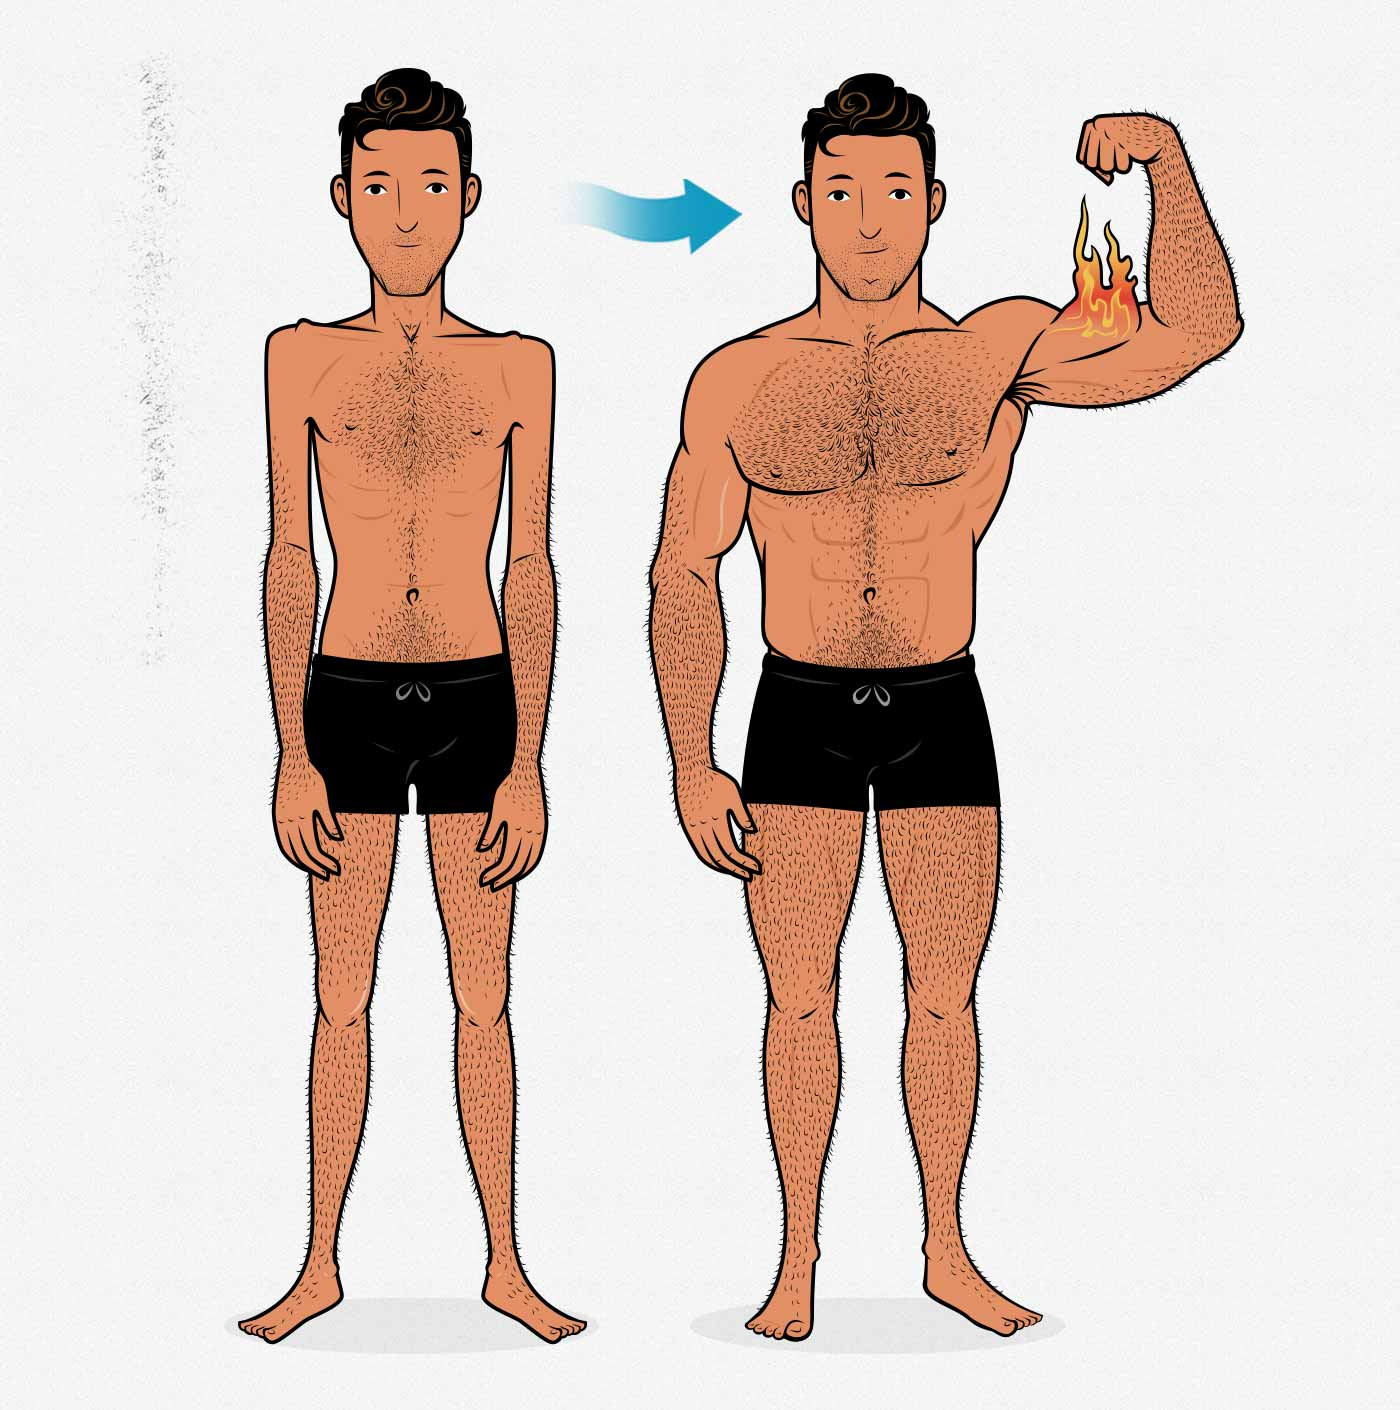 Before and after illustration of a skinny hardgainer ectomorph becoming muscular.